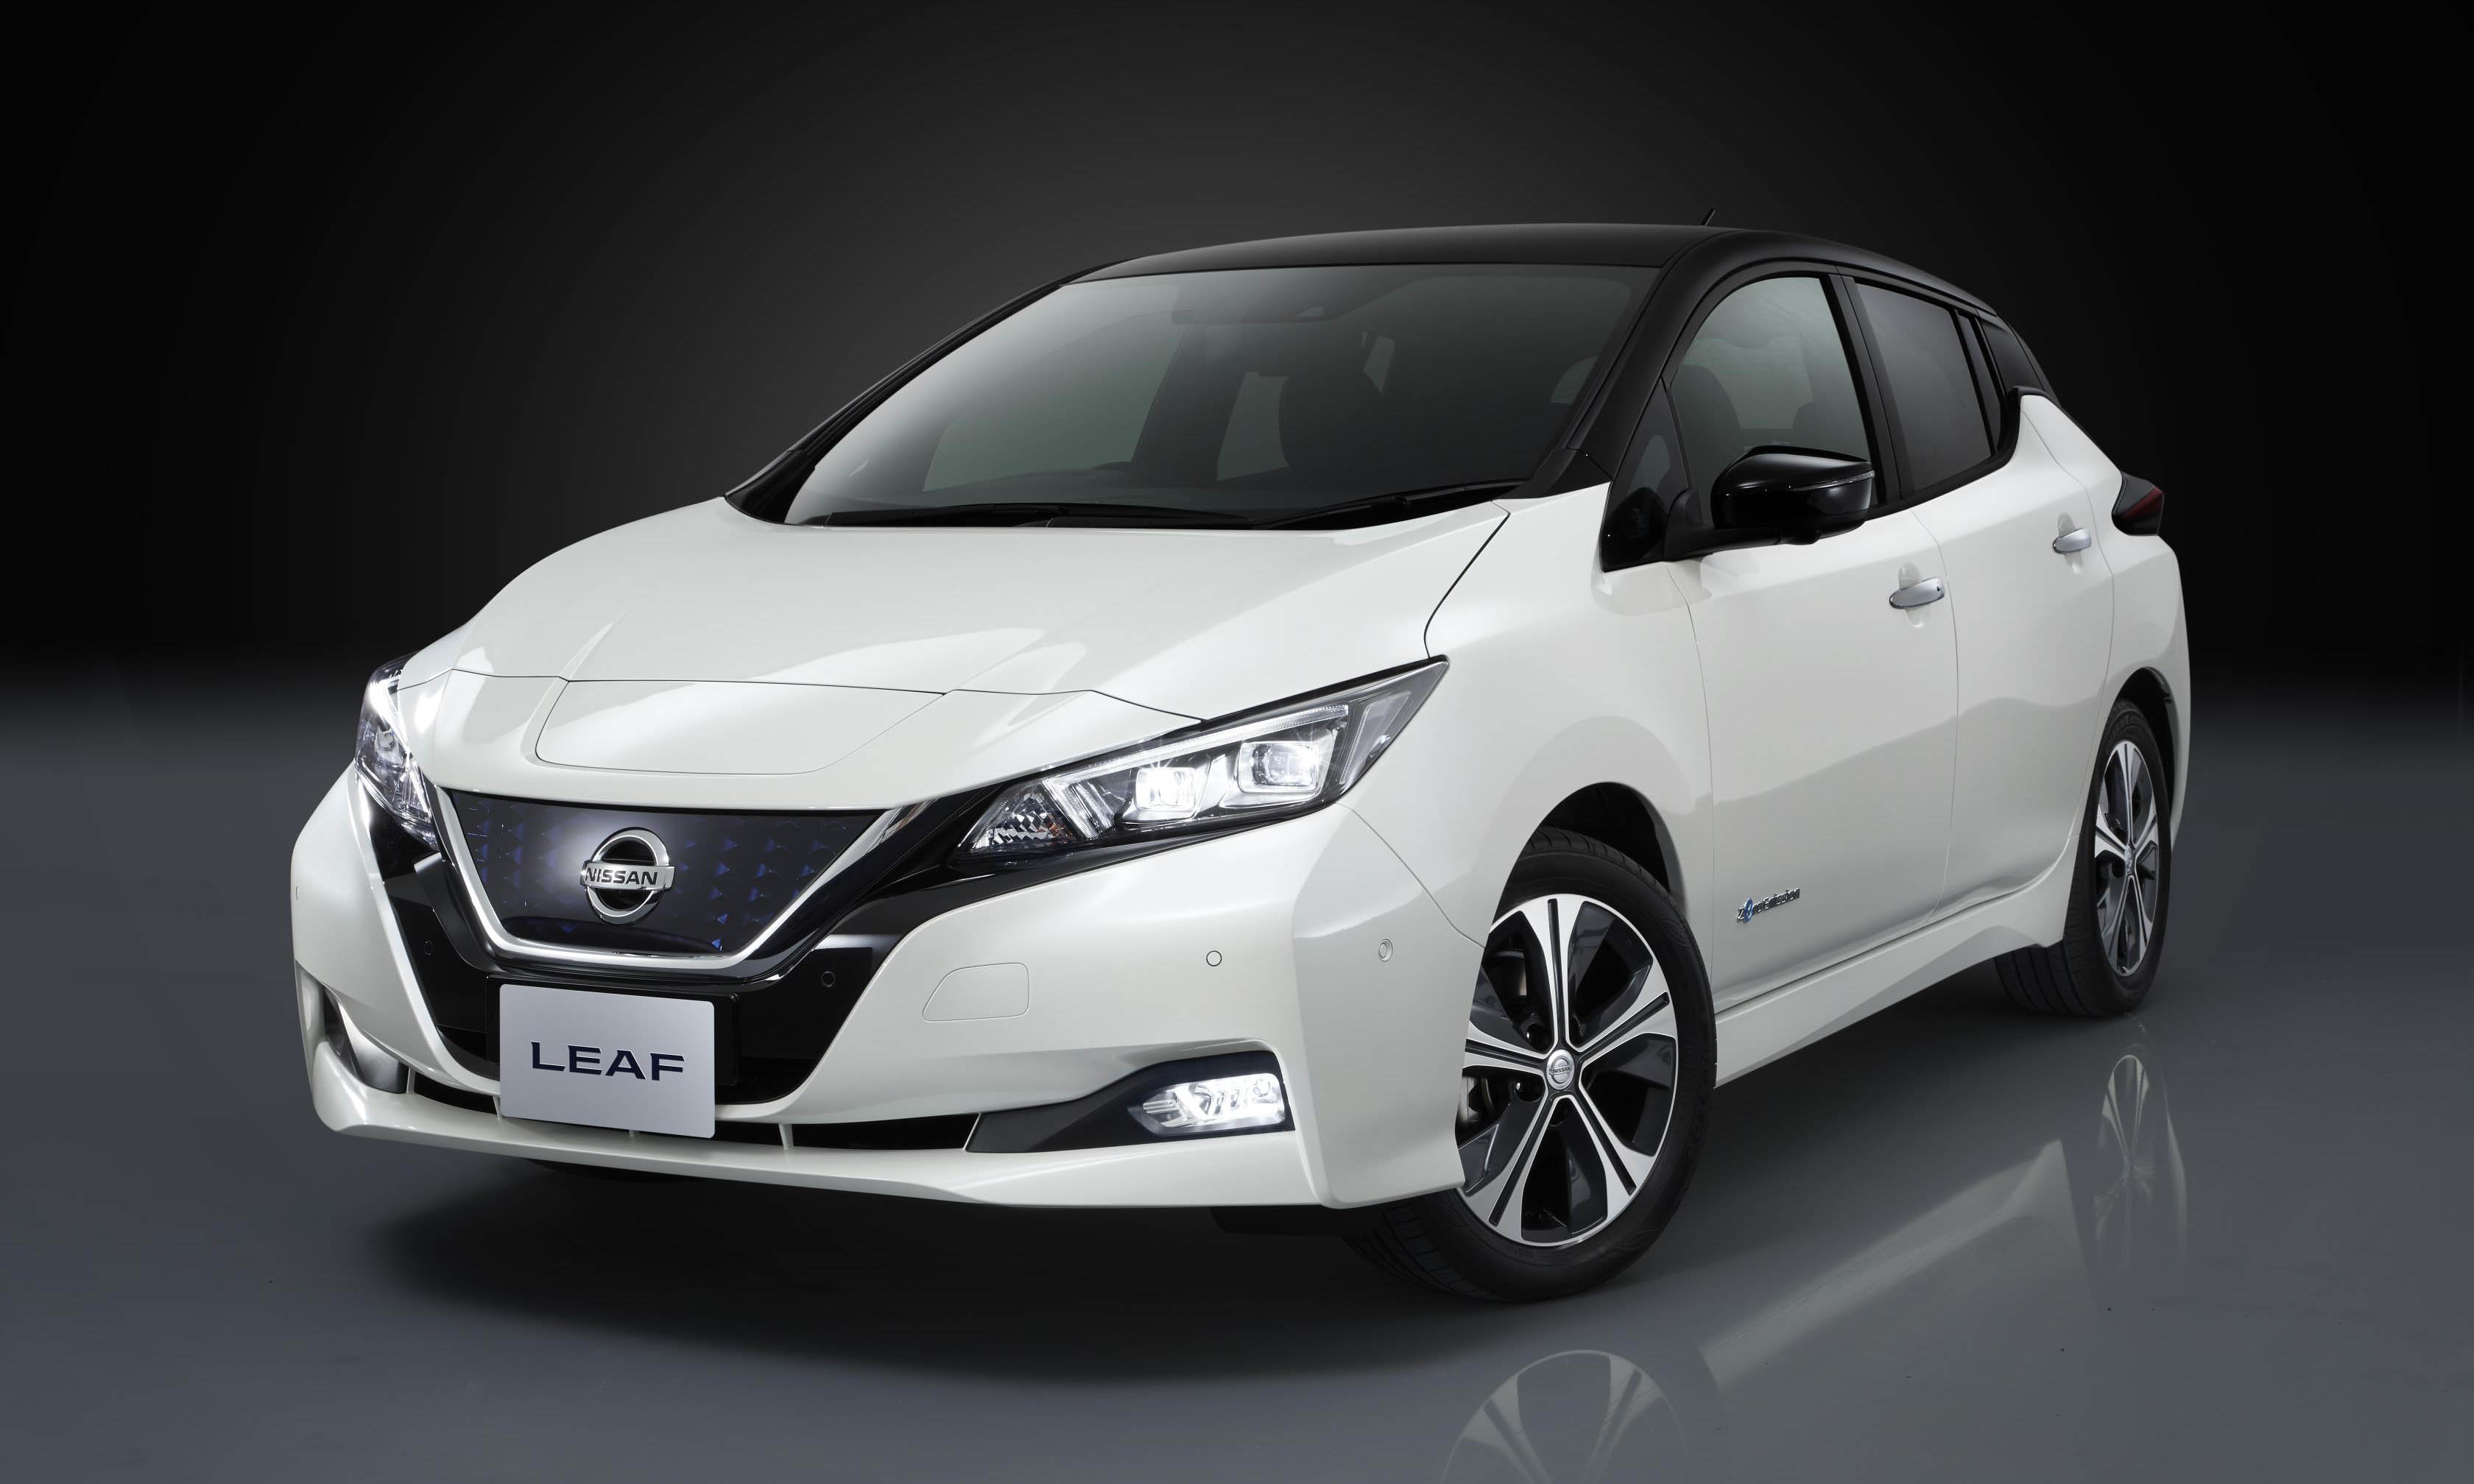 Here is the new Nissan Leaf, offering an improved range and revised styling .